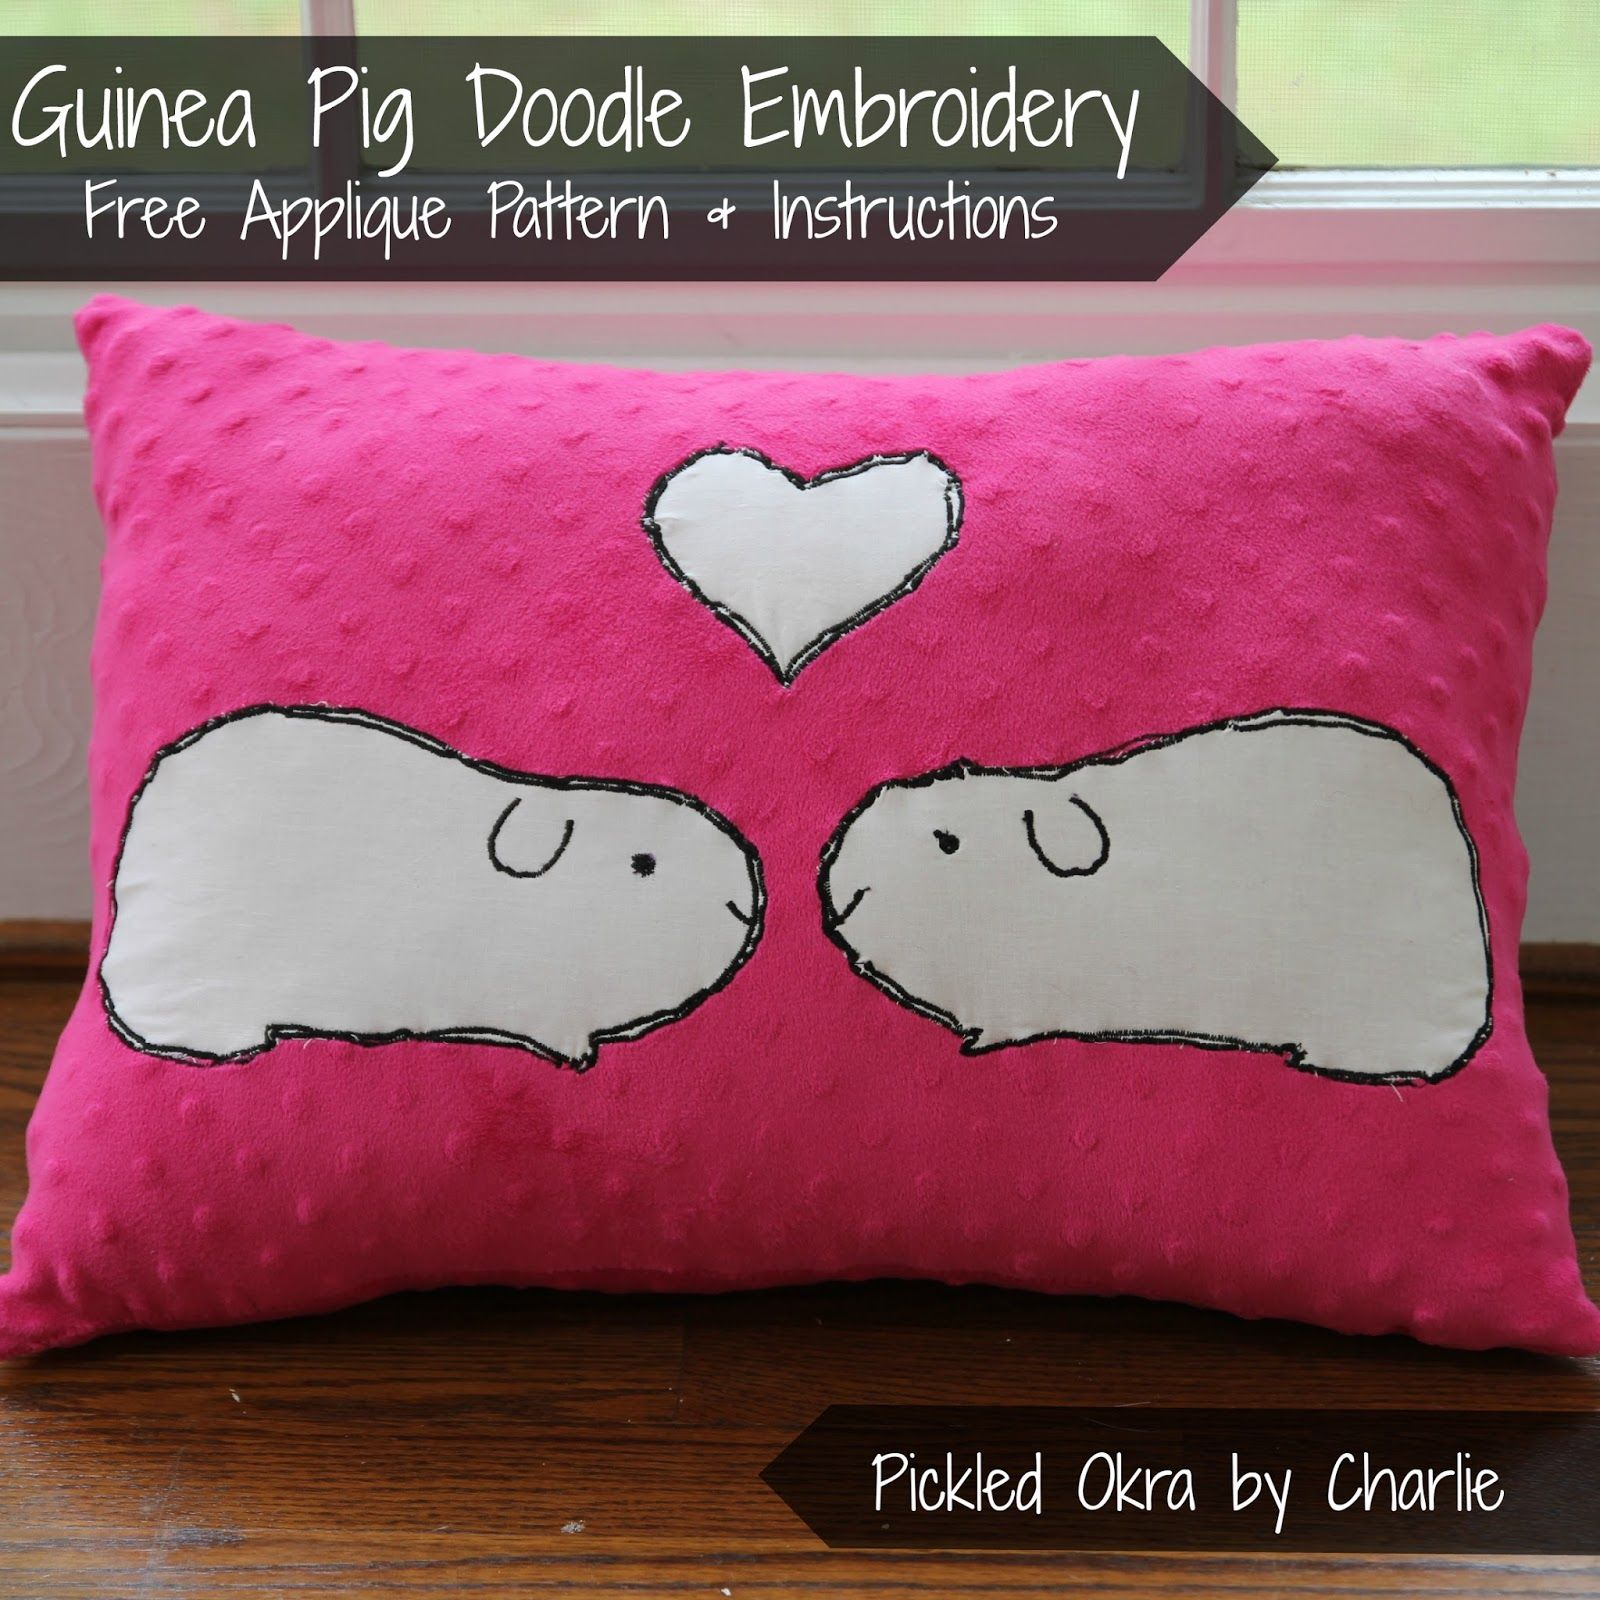 Pickled Okra by Charlie: Guinea Pig Doodle Embroidery Free Applique Pattern \u0026 Instructions & Ten free sewing tutorials. I like this one-maybe of hammies though ... pillowsntoast.com